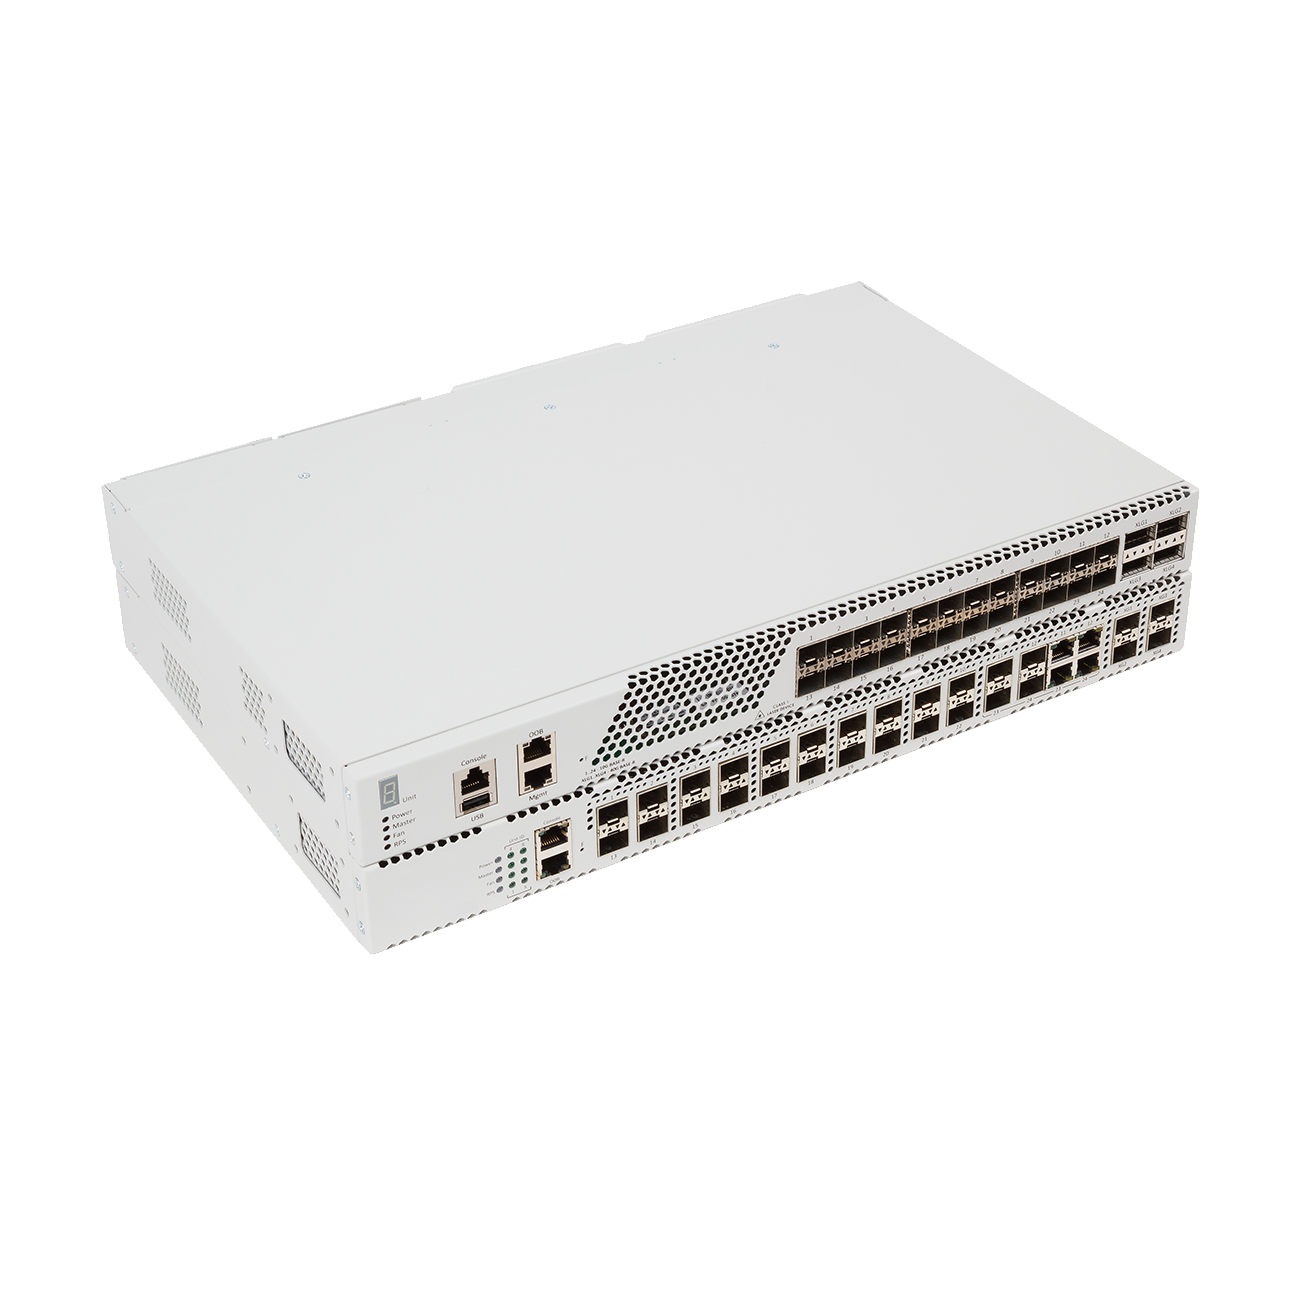 Central Mesh Router - Seamless routing of data between fixed and wireless network infrastructure using the Mesh 4G proprietary QCMR protocol.